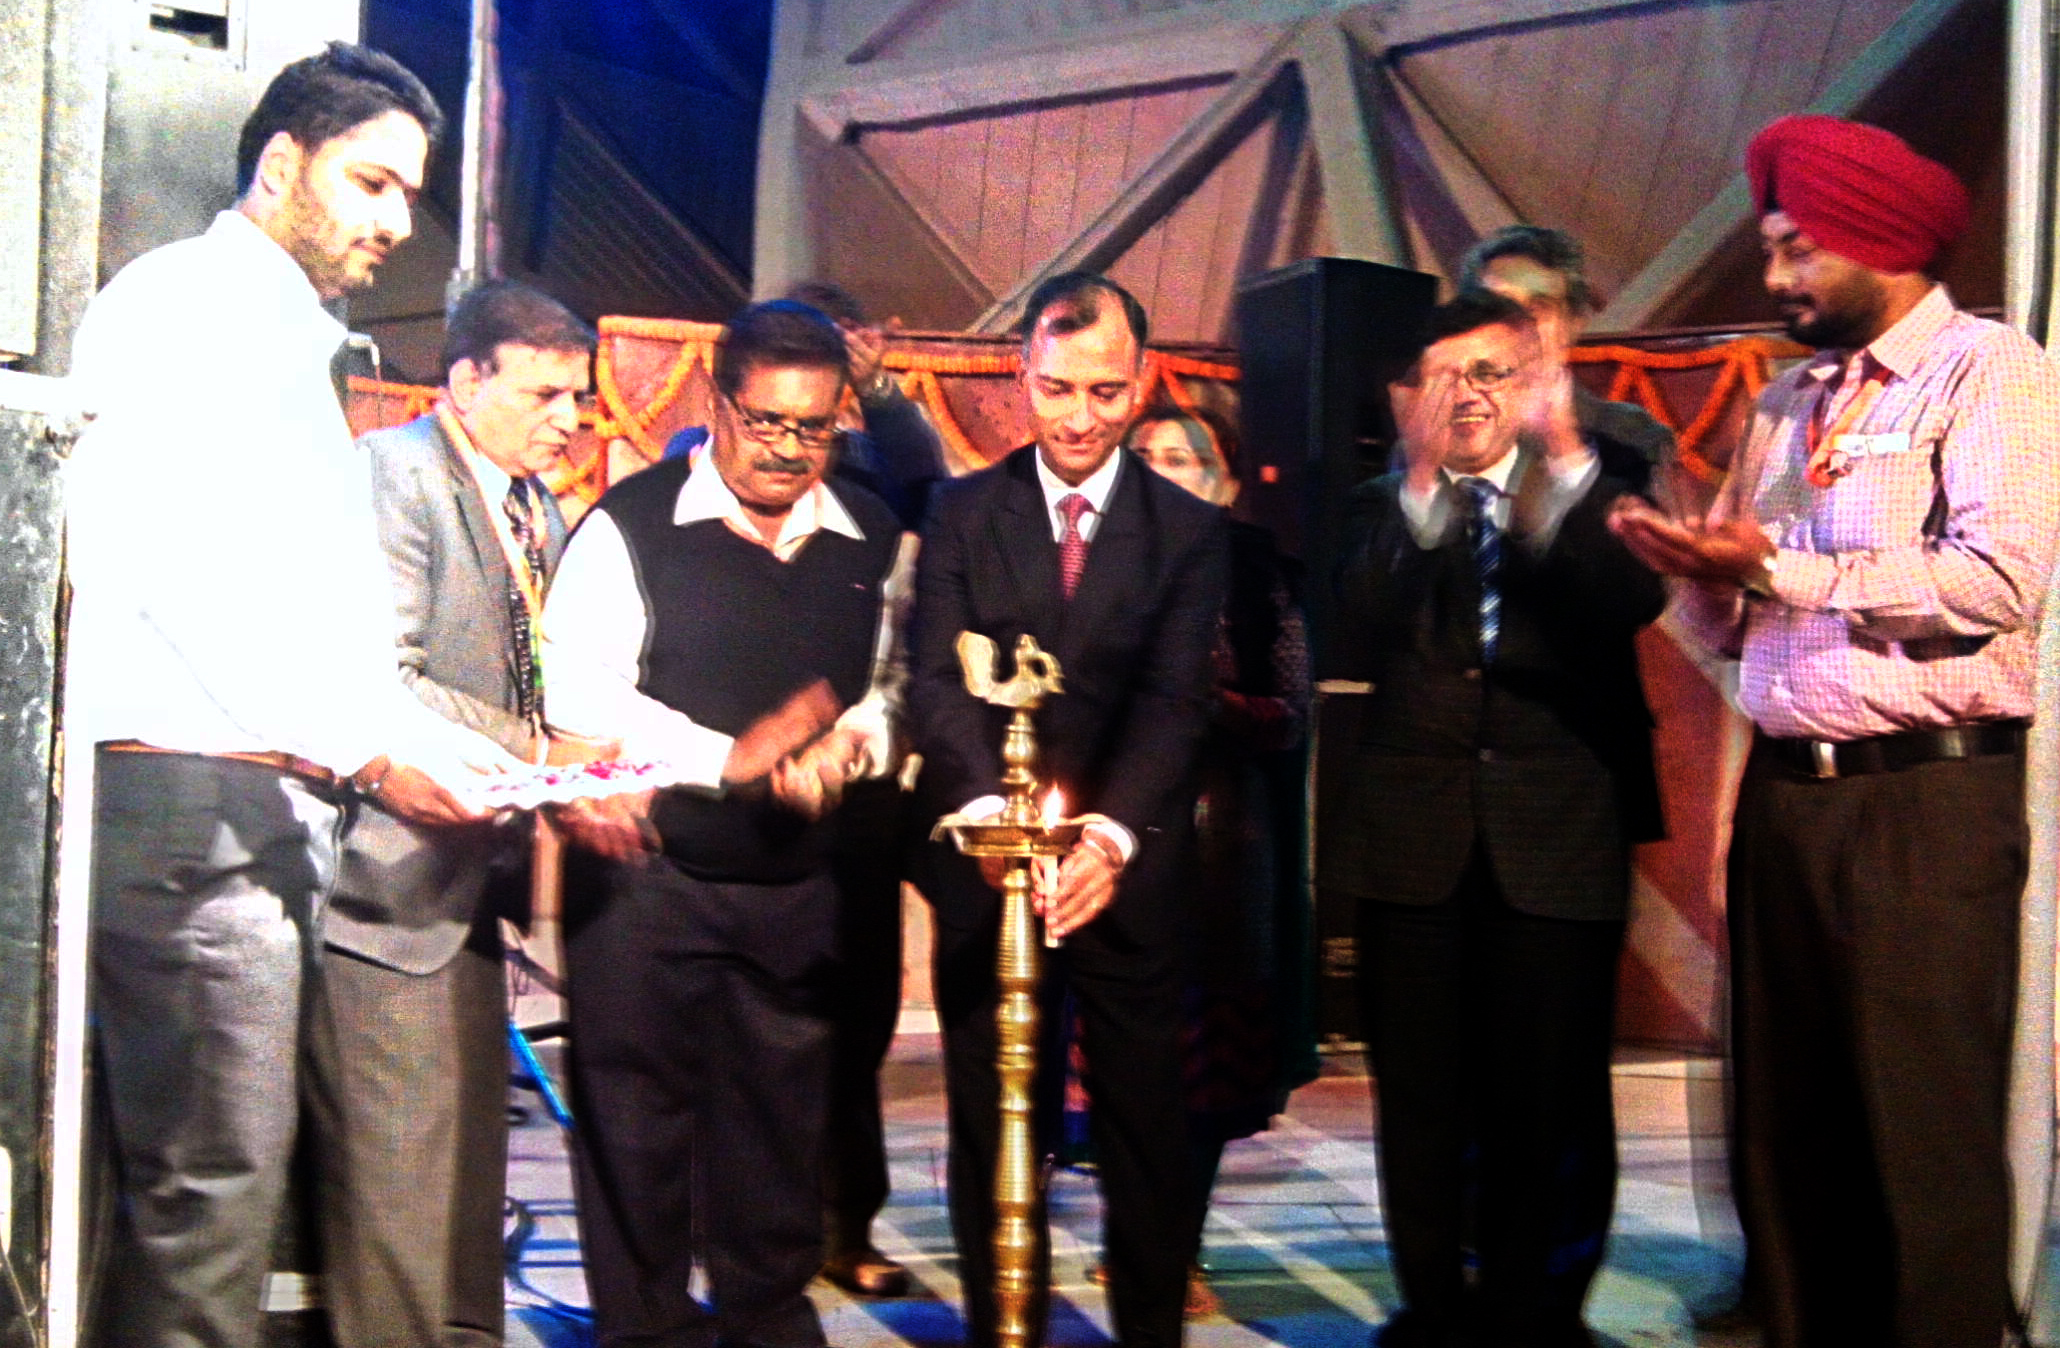 The Adviser to the Administrator, UT, Chandigarh, Mr. Vijay Dev lighting the traditional lamp at the celebration of Chandigarh Day at Chandigarh Pavilion in the 35th India International Trade Fair-2015 at Pragati Maidan, New Delhi on Wednesday, November 25, 2015.